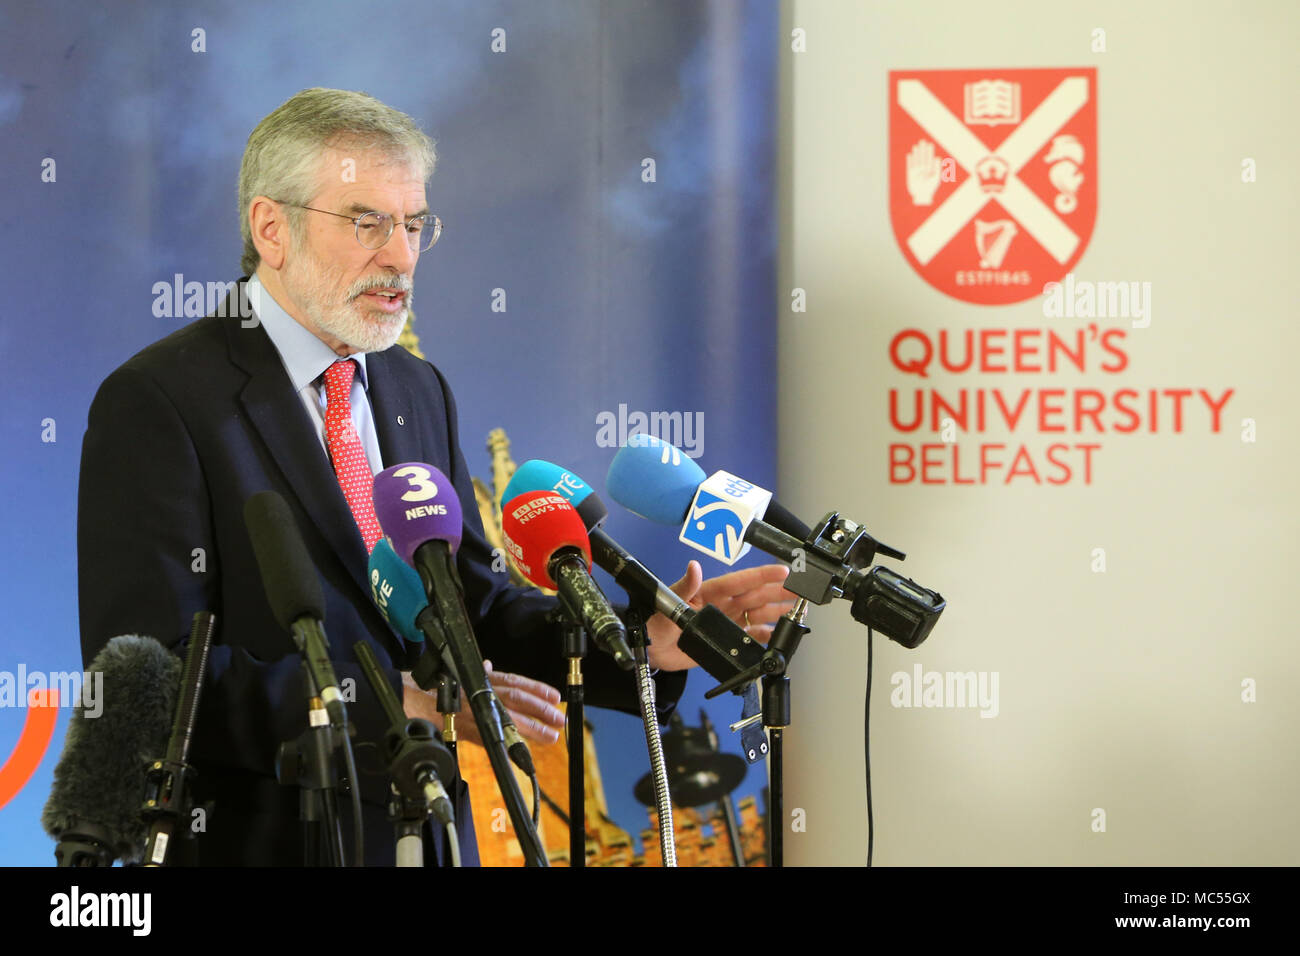 Gerry Adams, former Sinn Fein Leader speaks during a press conference  at  Queen's University Belfast, Tuesday, April 10th, 2018. Tuesday marks 20 years since politicians from Northern Ireland and the British and Irish governments agreed what became known as the Good Friday Agreement. It was the culmination of a peace process which sought to end 30 years of the Troubles. Two decades on, the Northern Ireland Assembly is suspended in a bitter atmosphere between the two main parties. - Stock Image